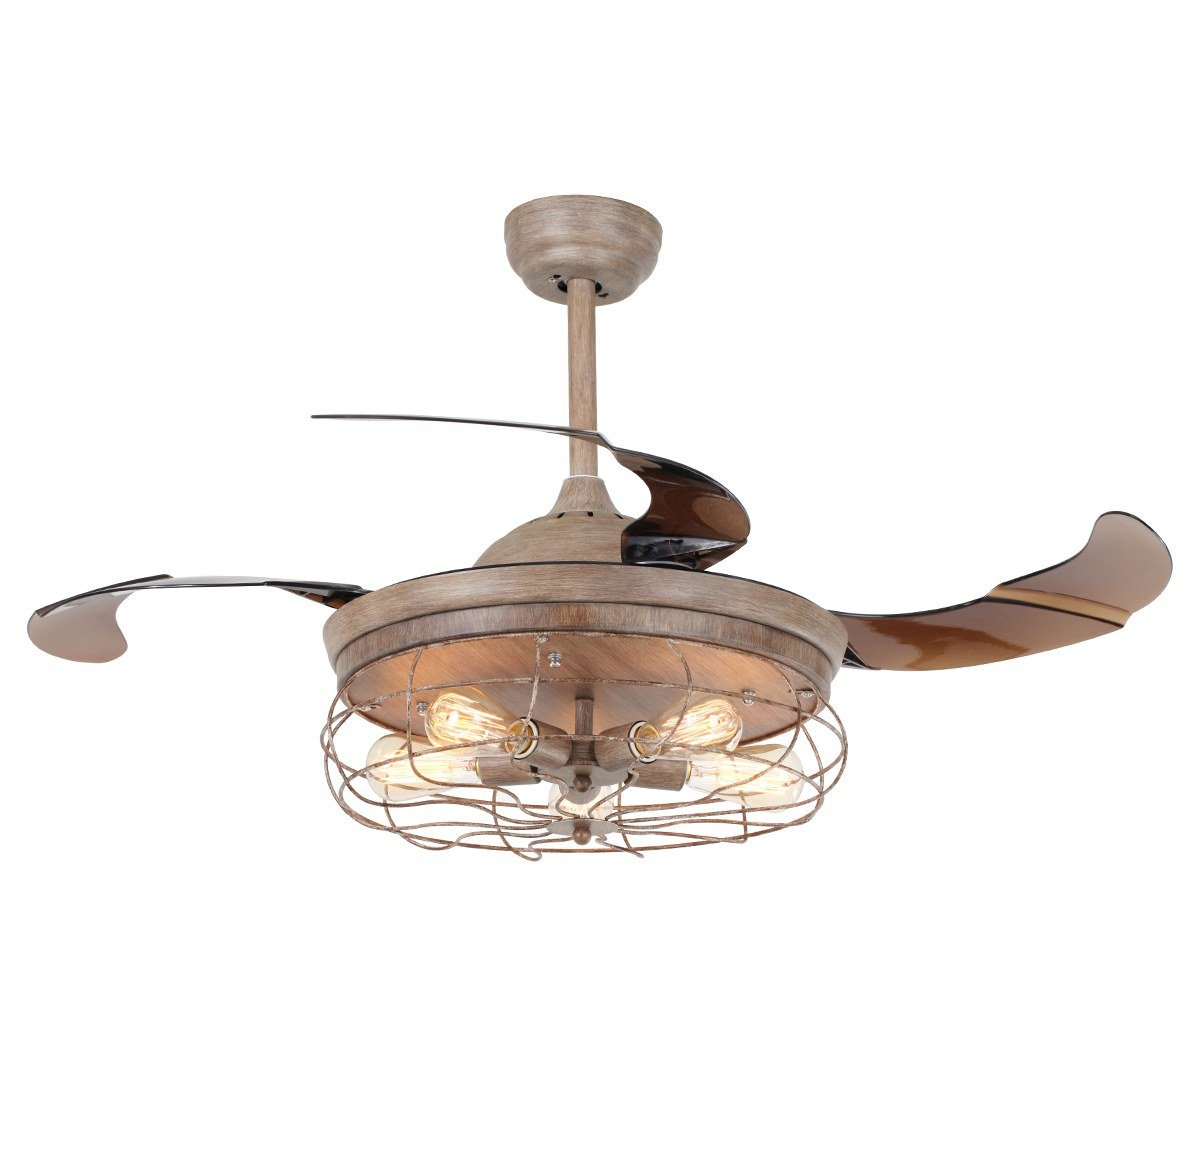 Parrot Uncle Ceiling Fans with Lights 42'' Vintage Farmhouse Fan Industrial Chandelier Fans with Retractable Blades, Remote Control, 5 Edison Bulbs Needed, Weathered Oak Wood